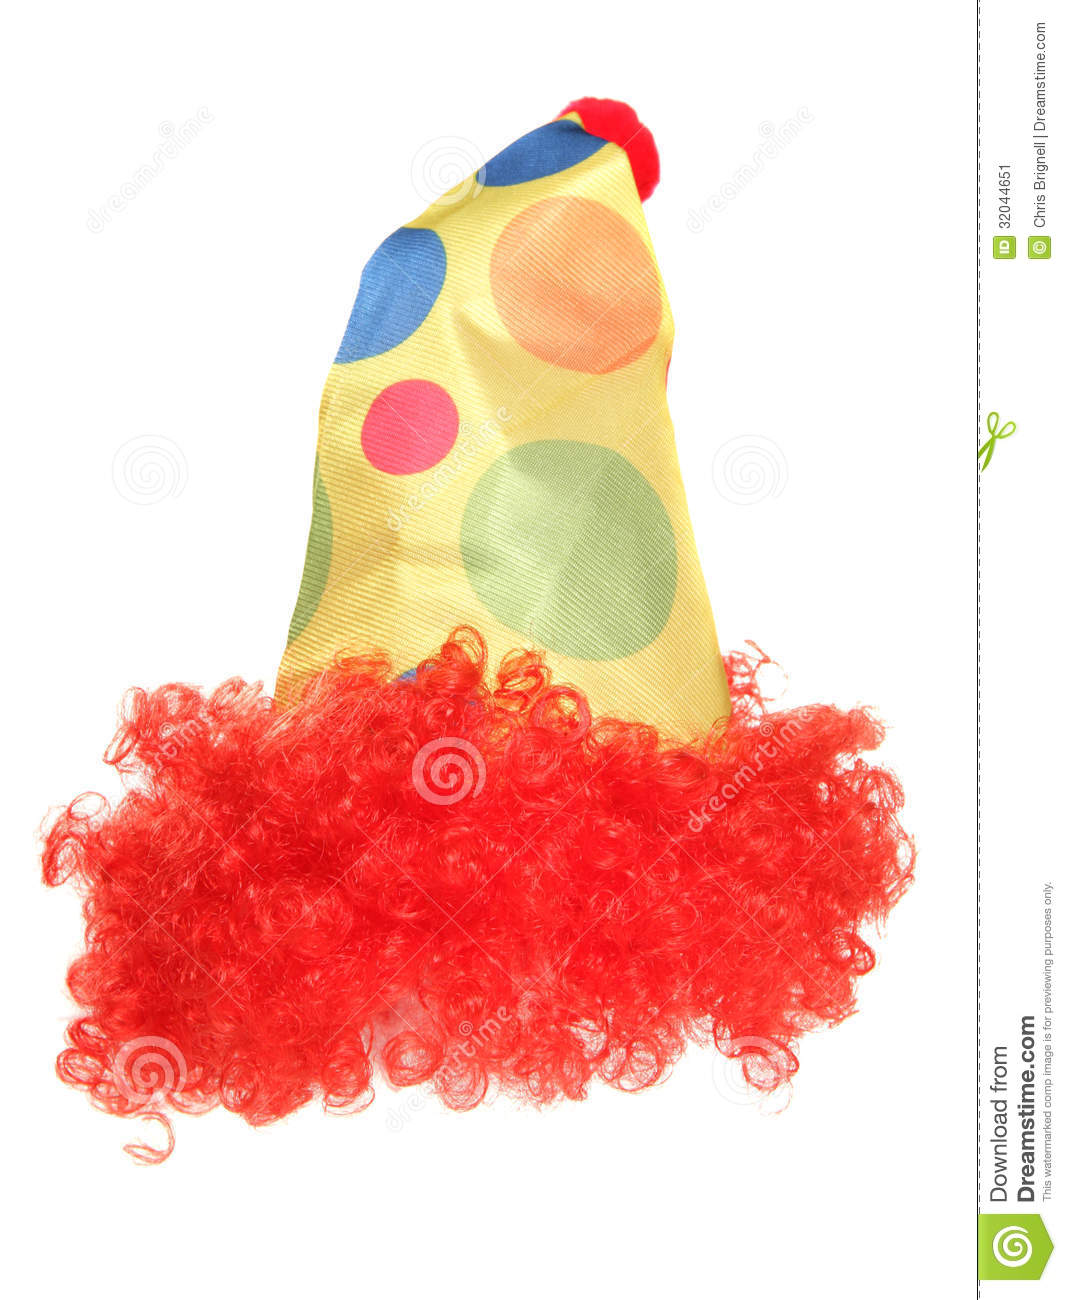 Clown Fancy Dress Hat And Wig Stock Image - Image of costume 39aefe106